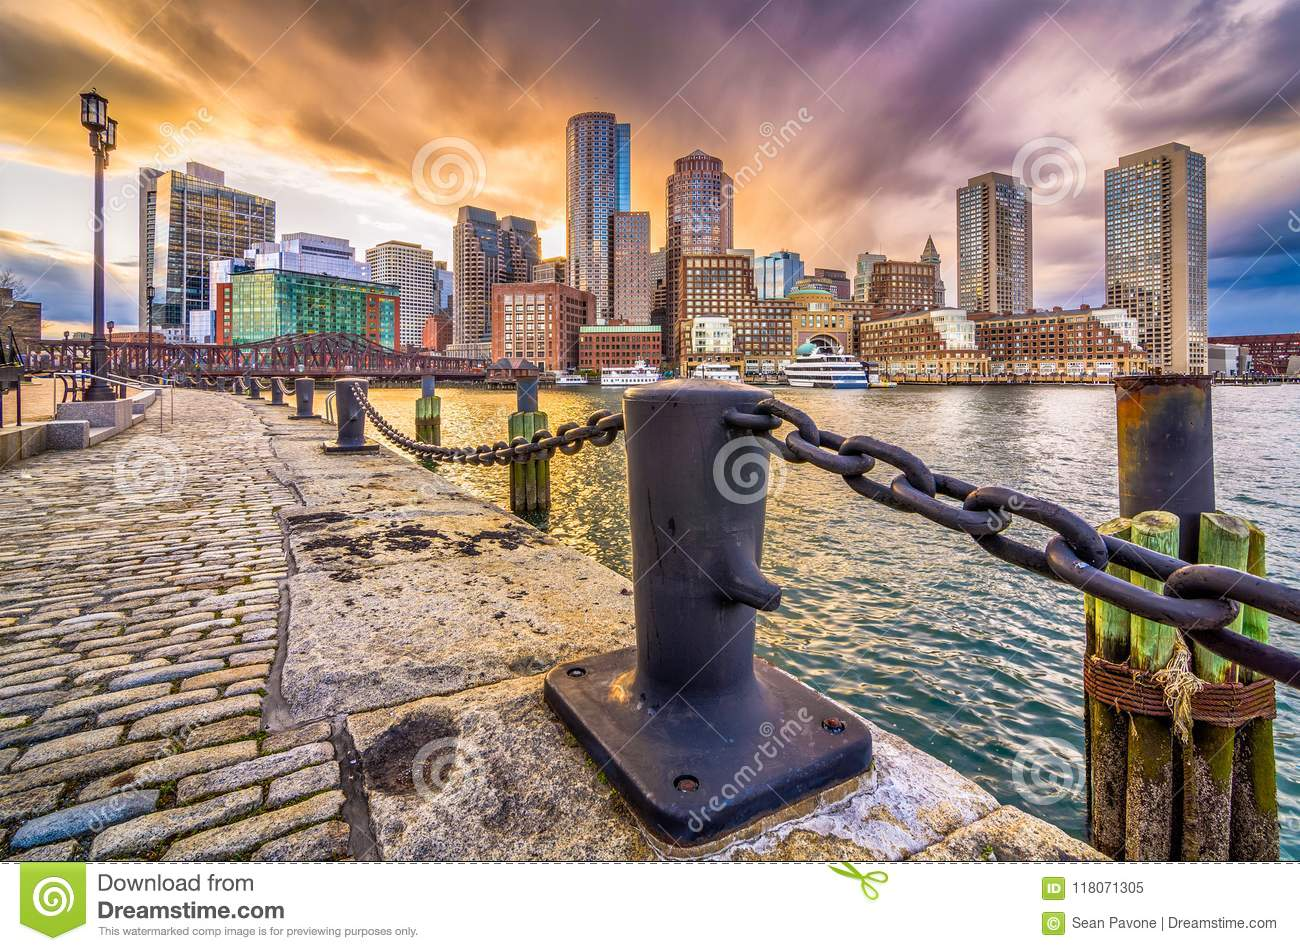 Boston, Massachusetts, port des Etats-Unis et horizon